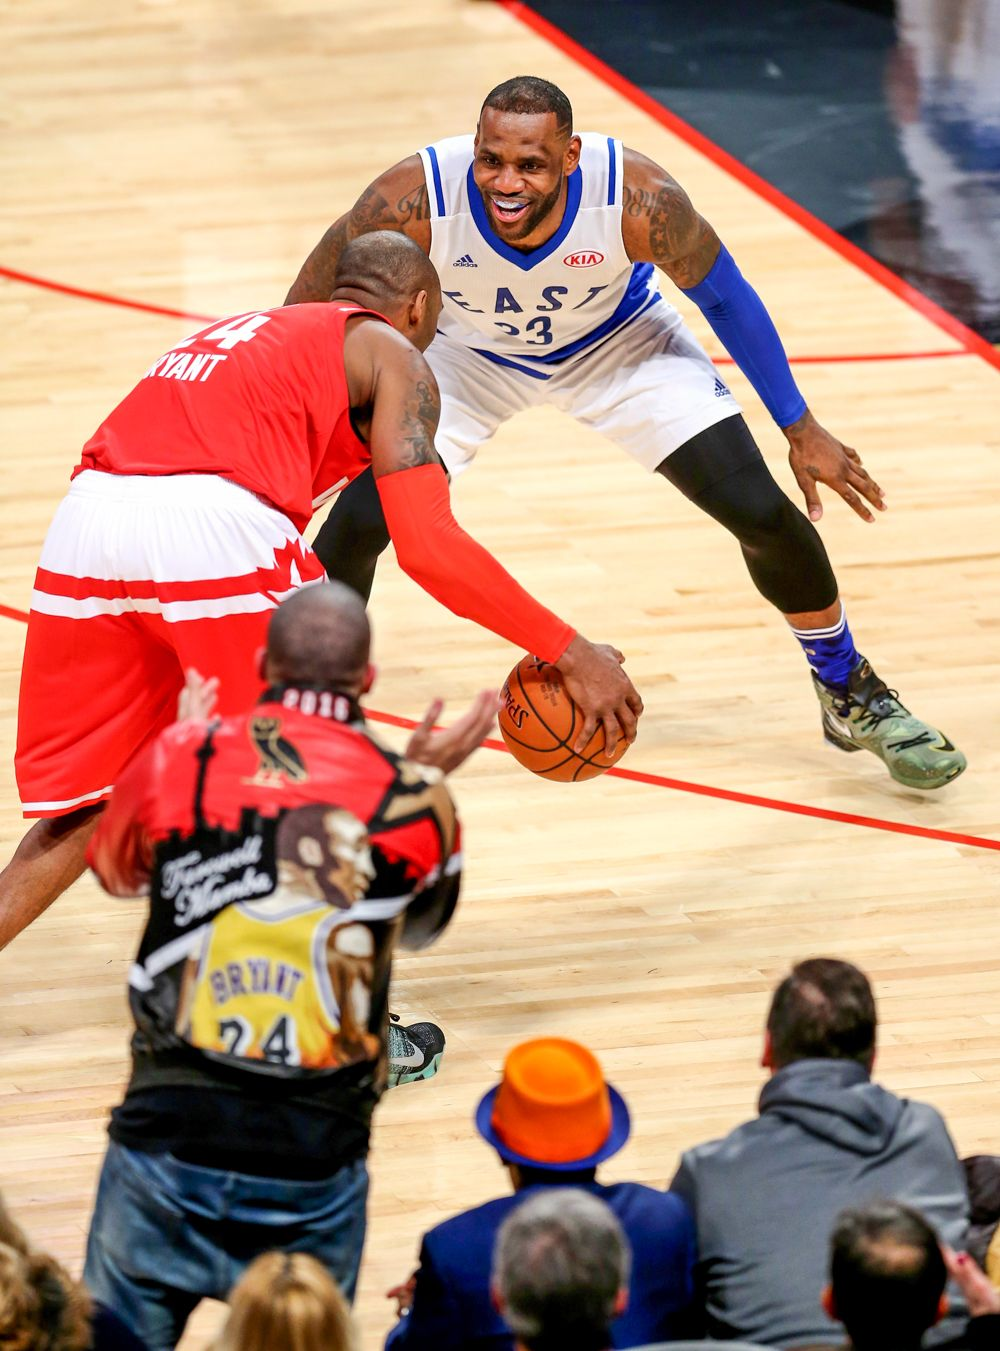 Miami heat lebron jamess vs golden state warriors nba2k17 miami - Lebron James And Kobe Bryant Exciting Photos From The 65th Nba All Star Game